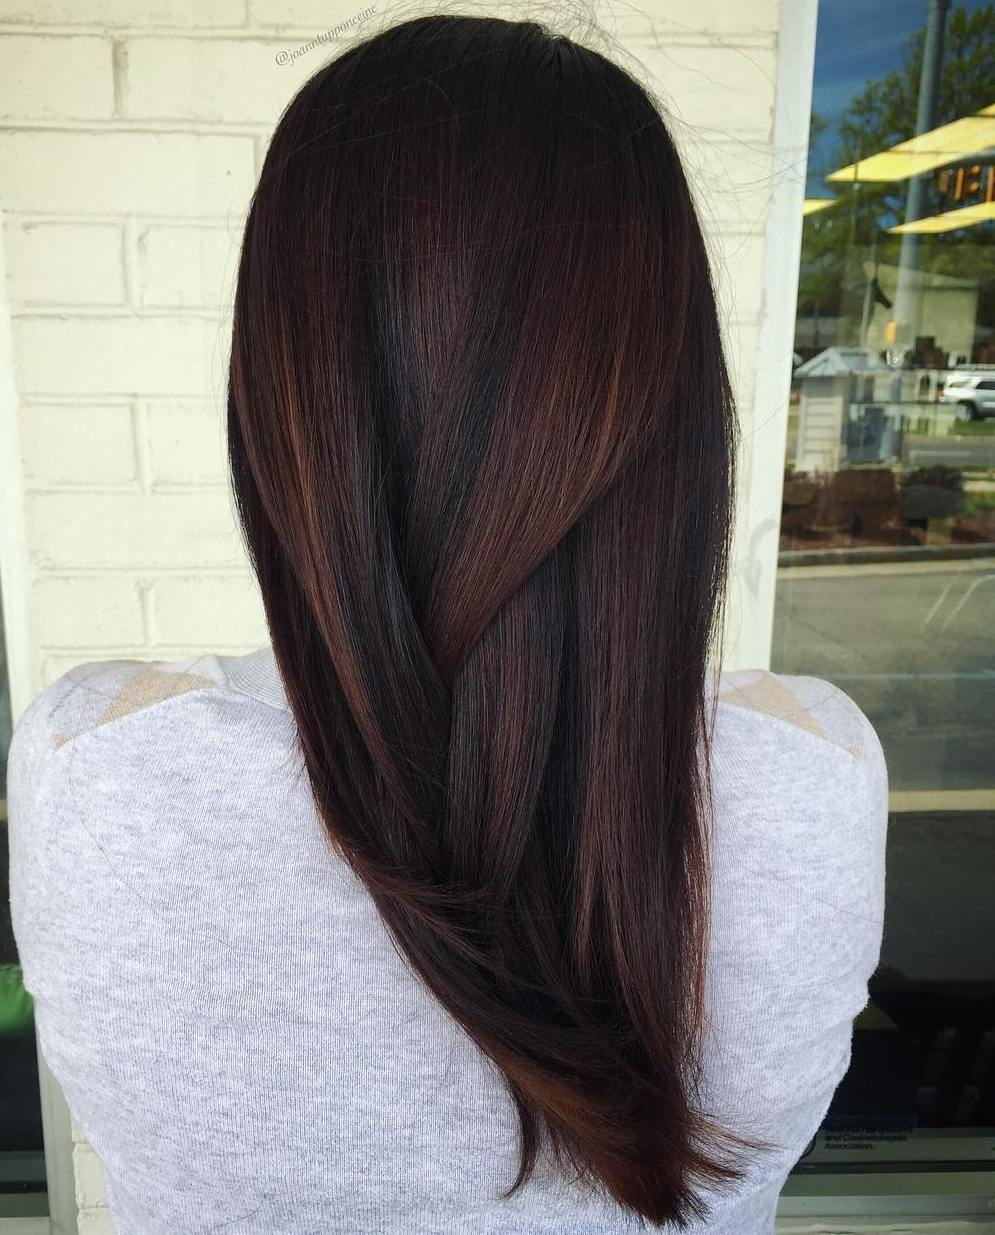 1 dark brown hair with subtle highlights